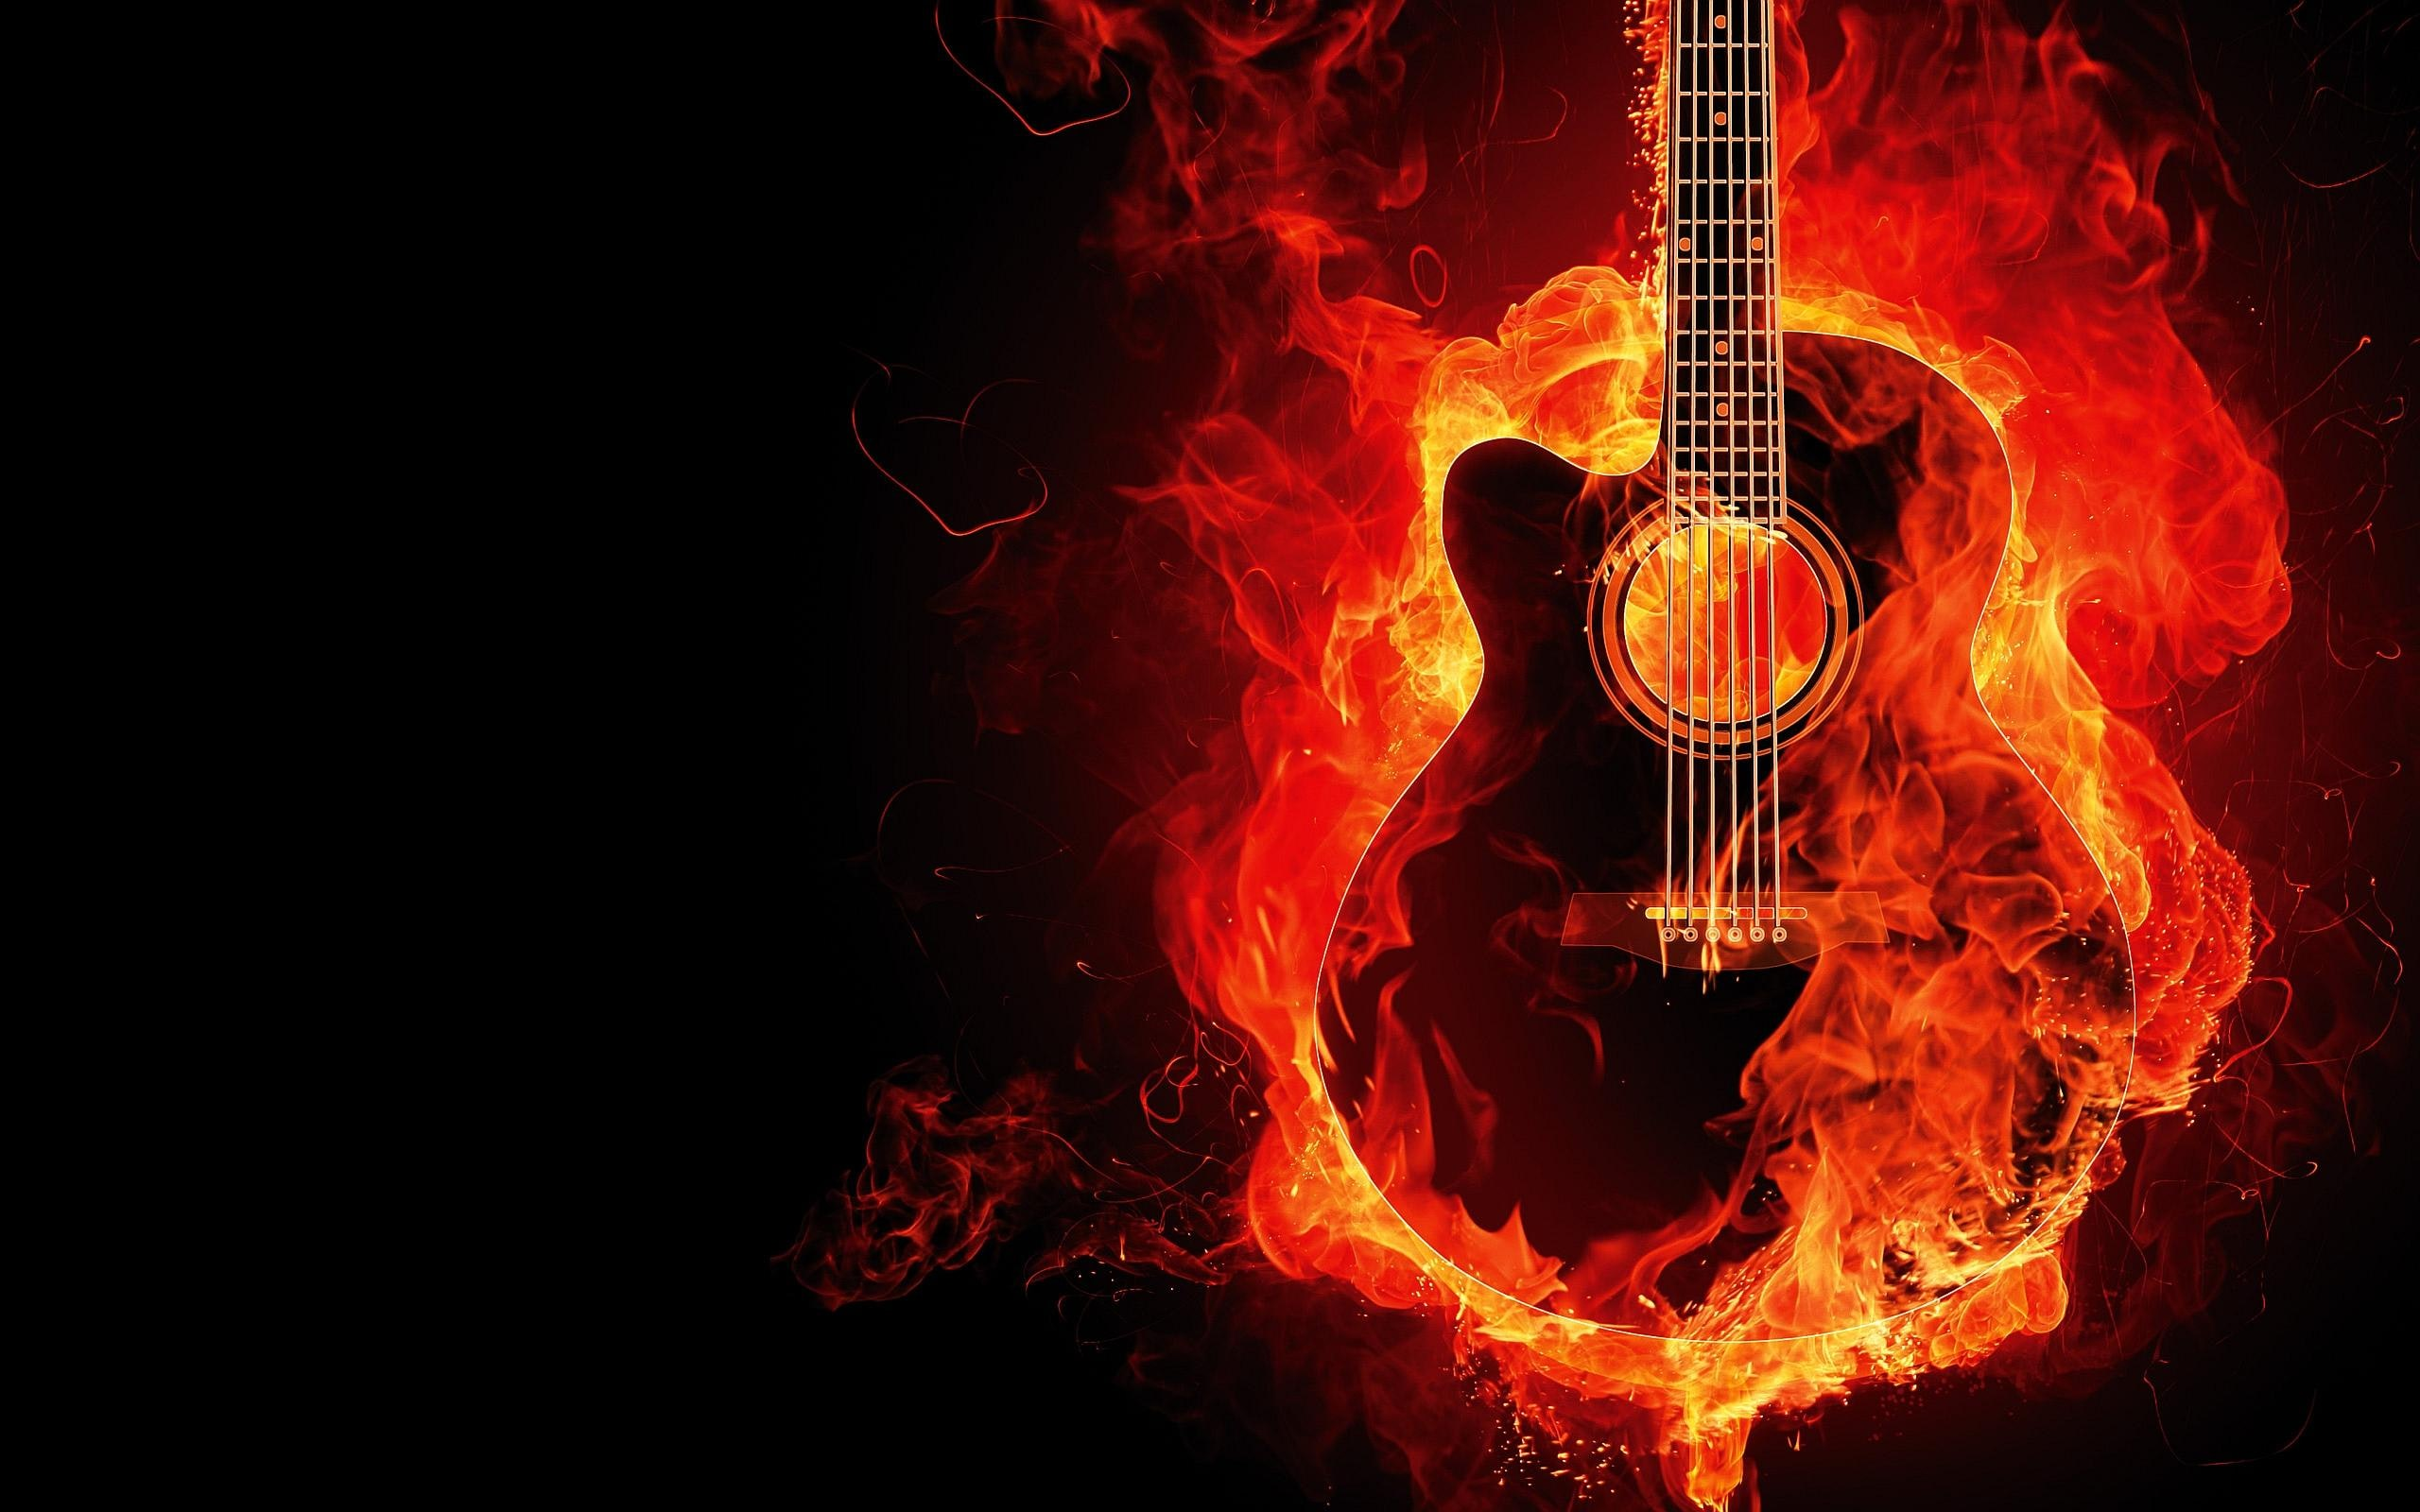 Best 100 Guitar Images Hq Download Free Pictures On Unsplash